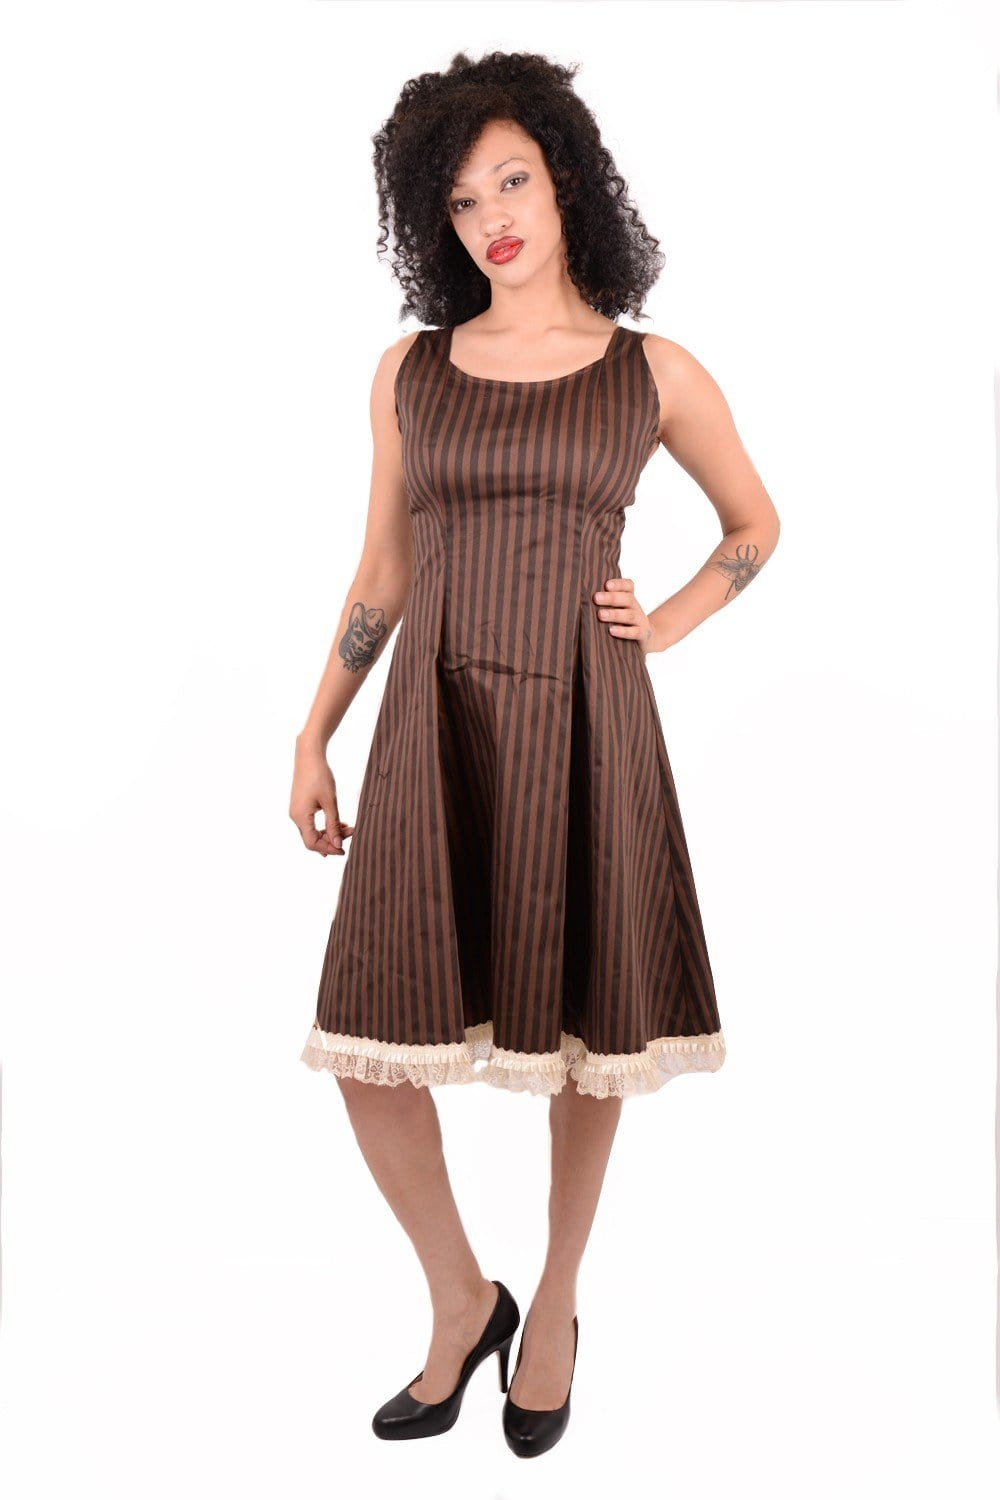 Compass Black & Brown Stripe Dress